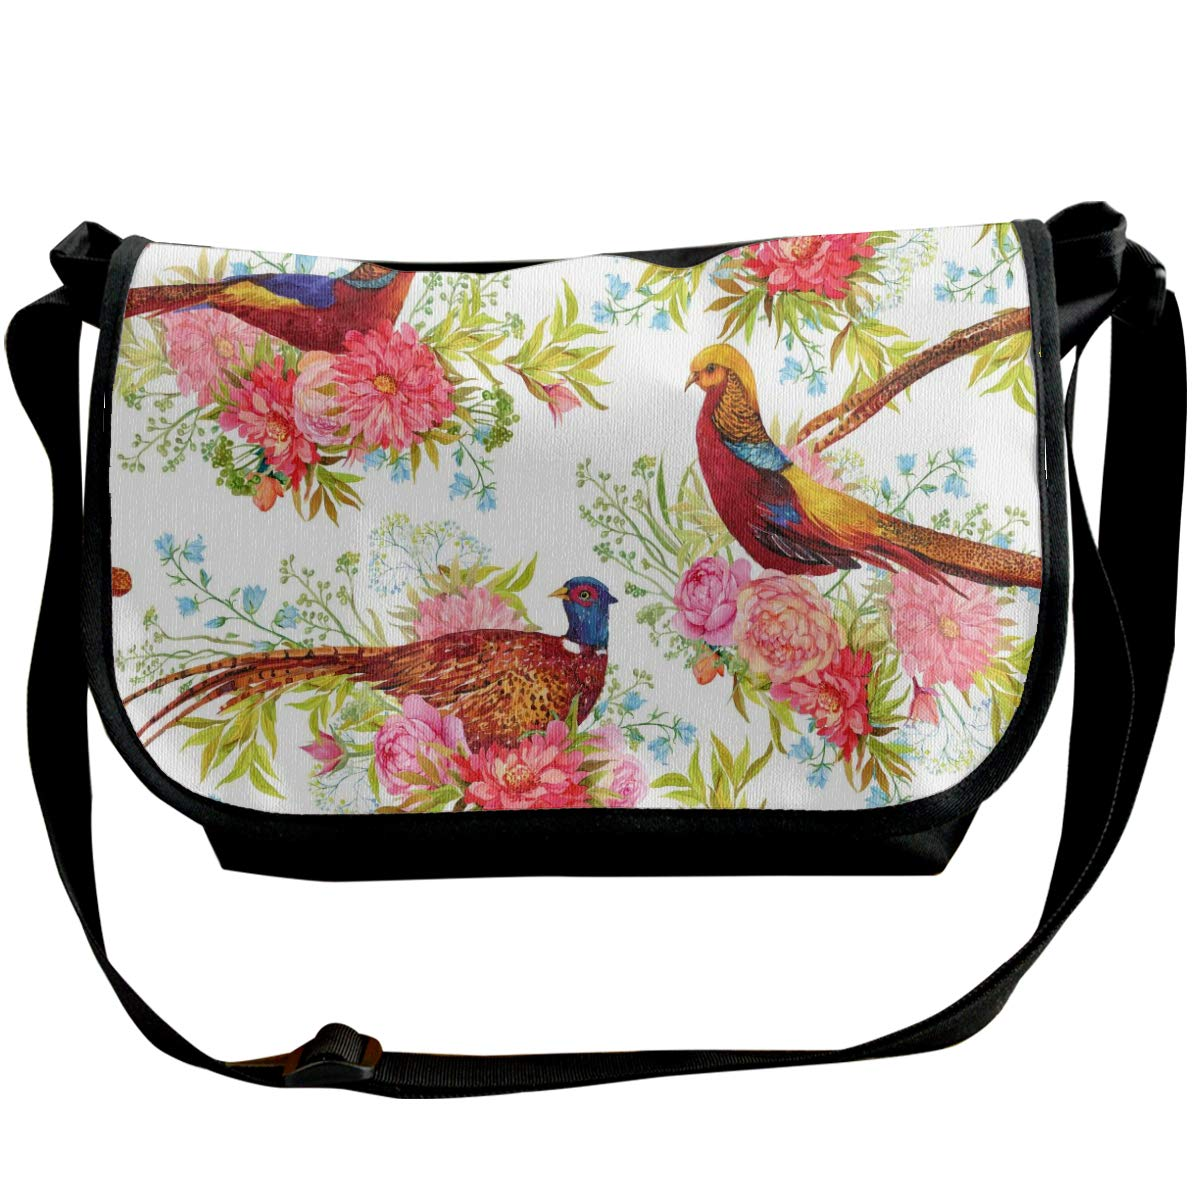 Taslilye For Fabric Birds Pheasants And Flowers Watercolor Illustration Personalized Wide Crossbody Shoulder Bag For Men And Women For Daily Work Or Travel